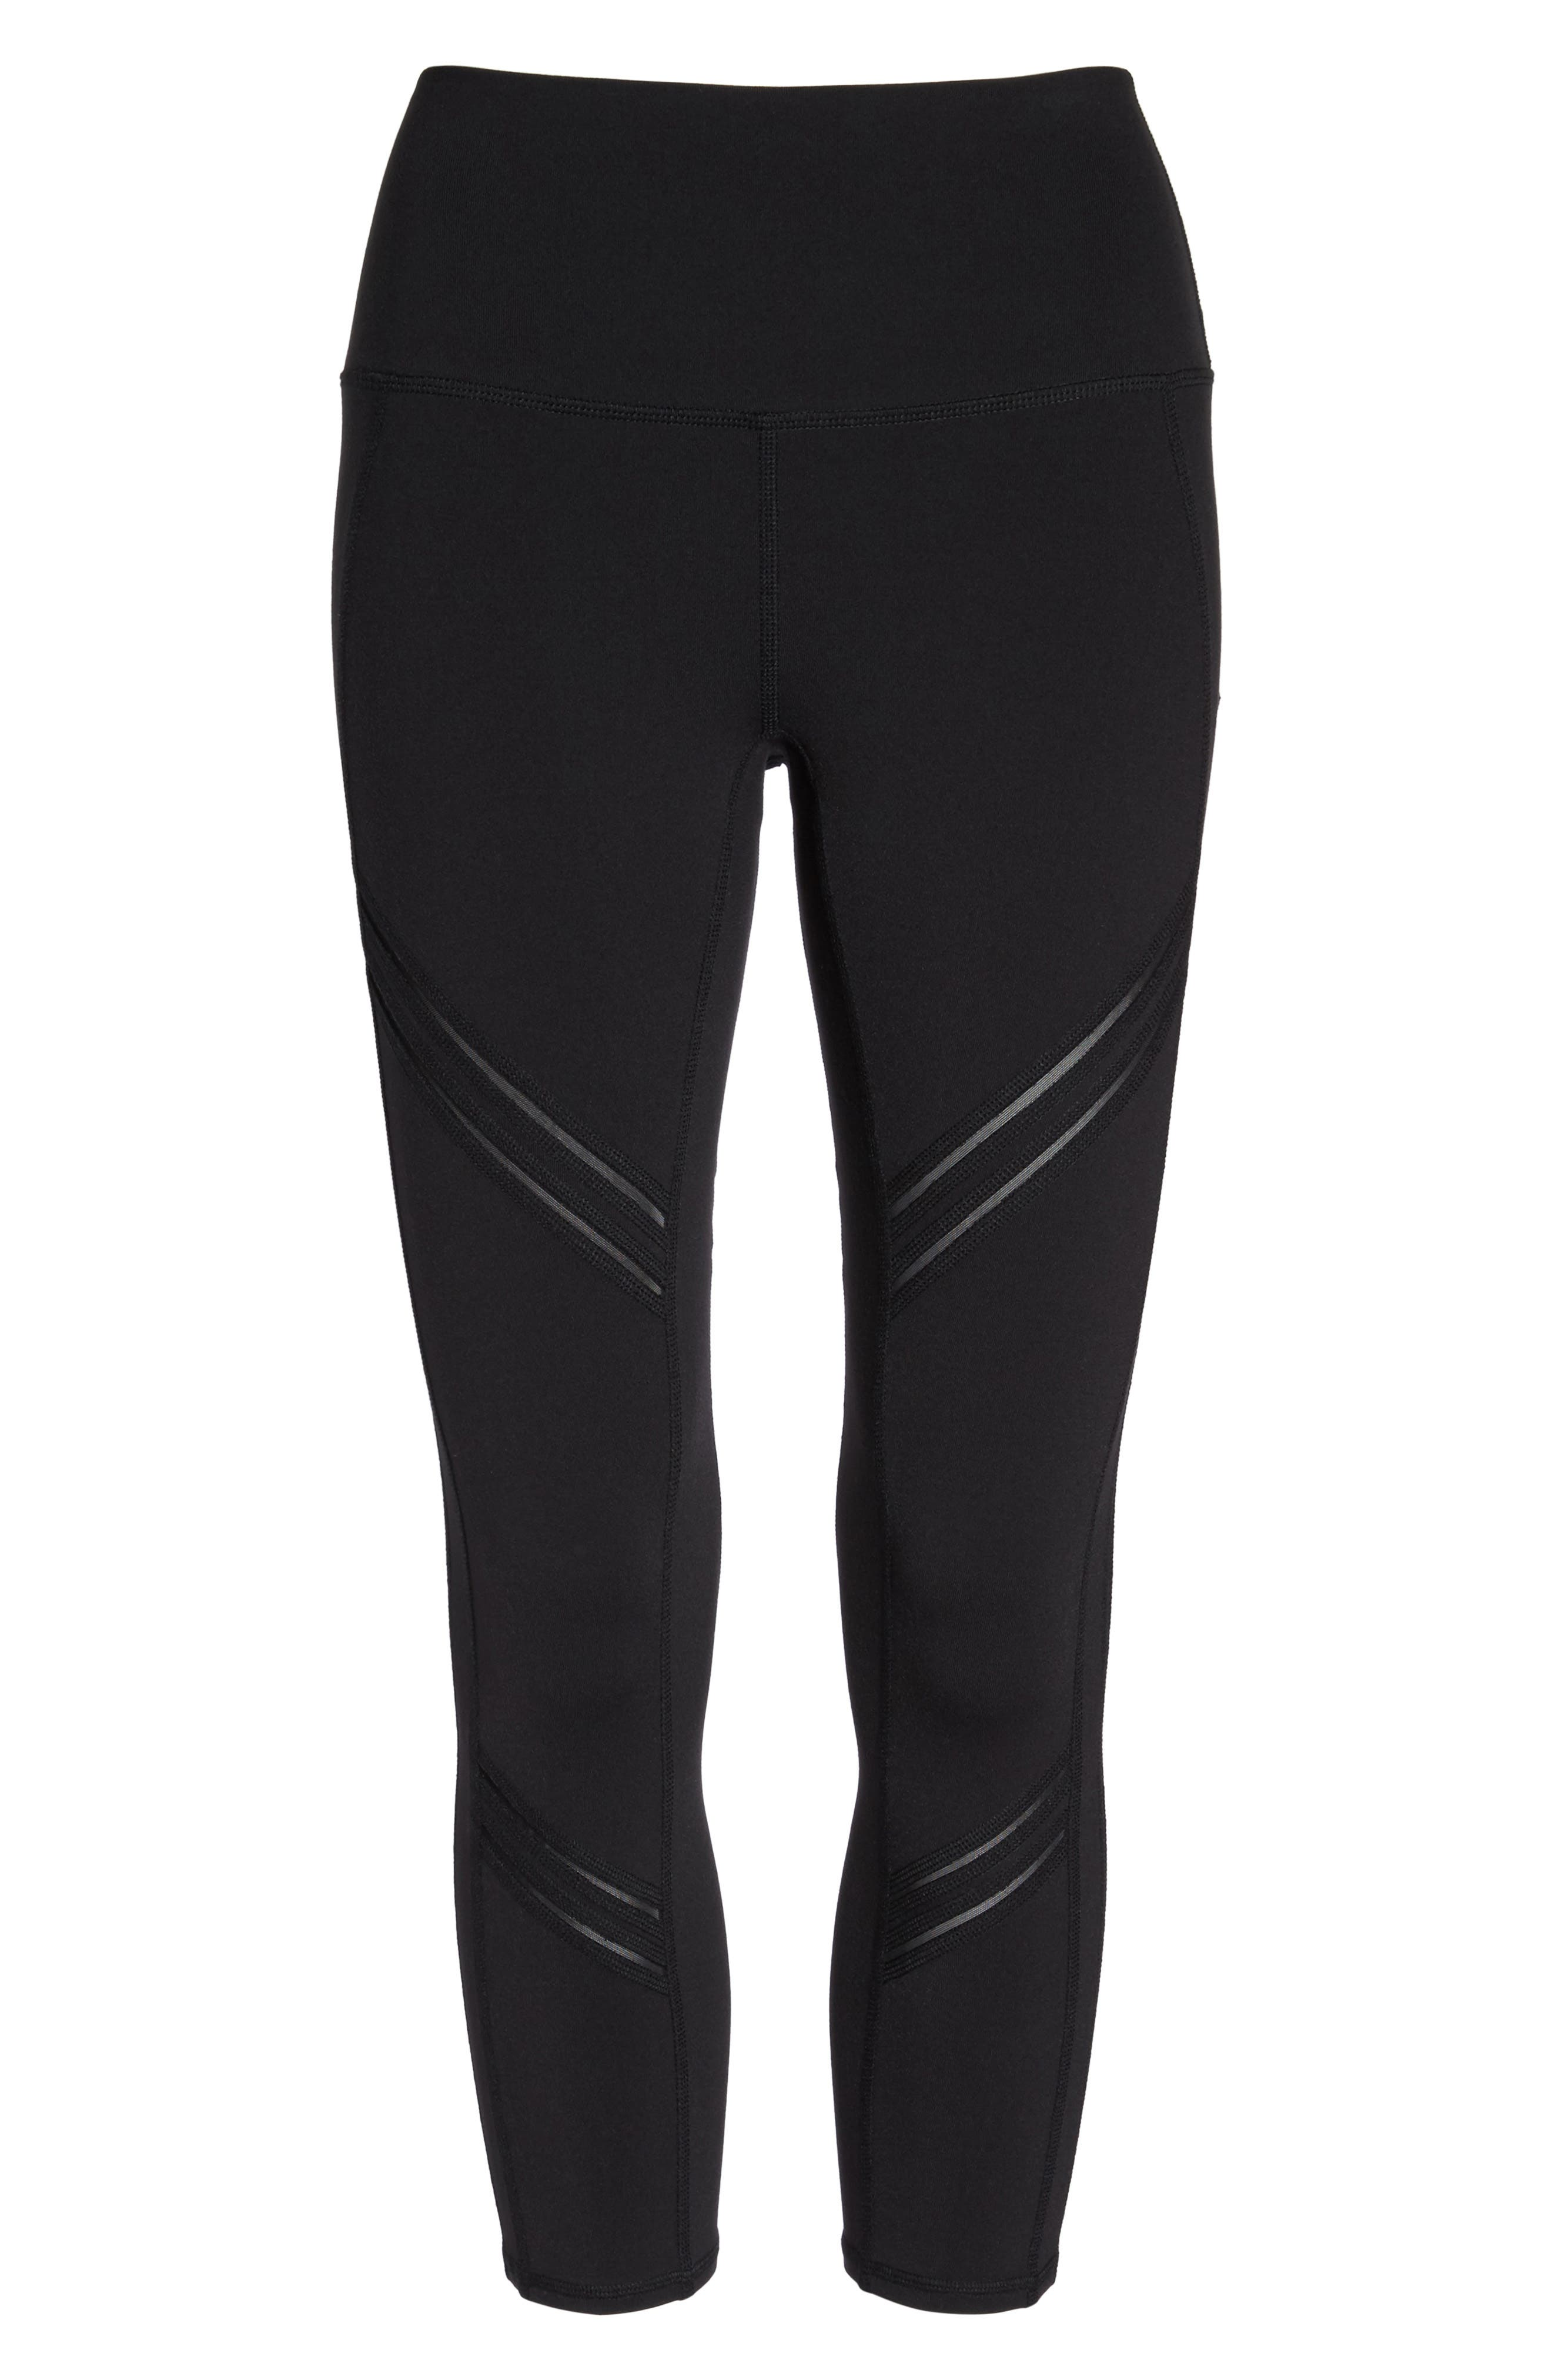 High Rise Cosmic Capri Leggings,                             Alternate thumbnail 6, color,                             001